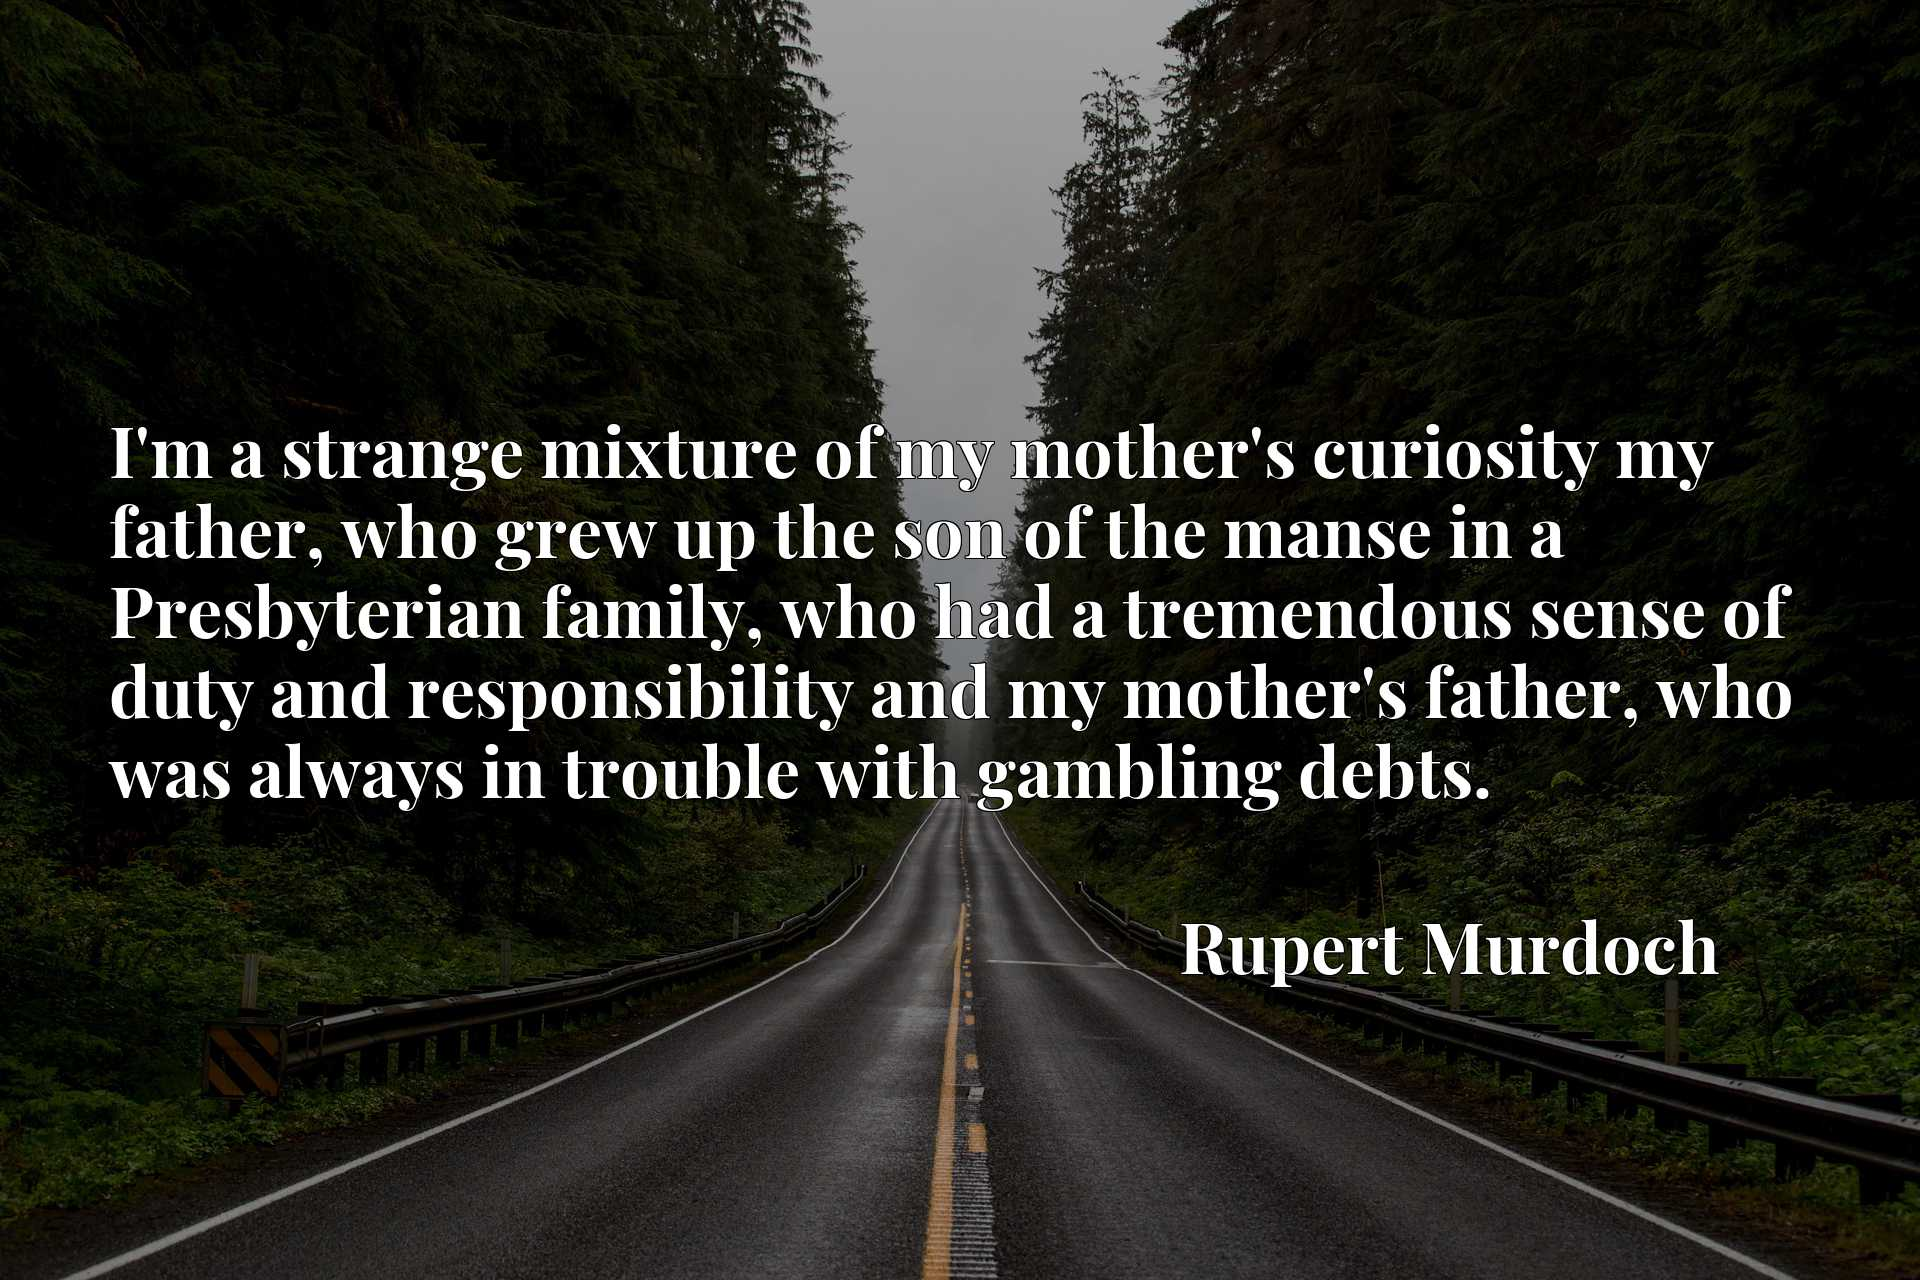 I'm a strange mixture of my mother's curiosity my father, who grew up the son of the manse in a Presbyterian family, who had a tremendous sense of duty and responsibility and my mother's father, who was always in trouble with gambling debts.